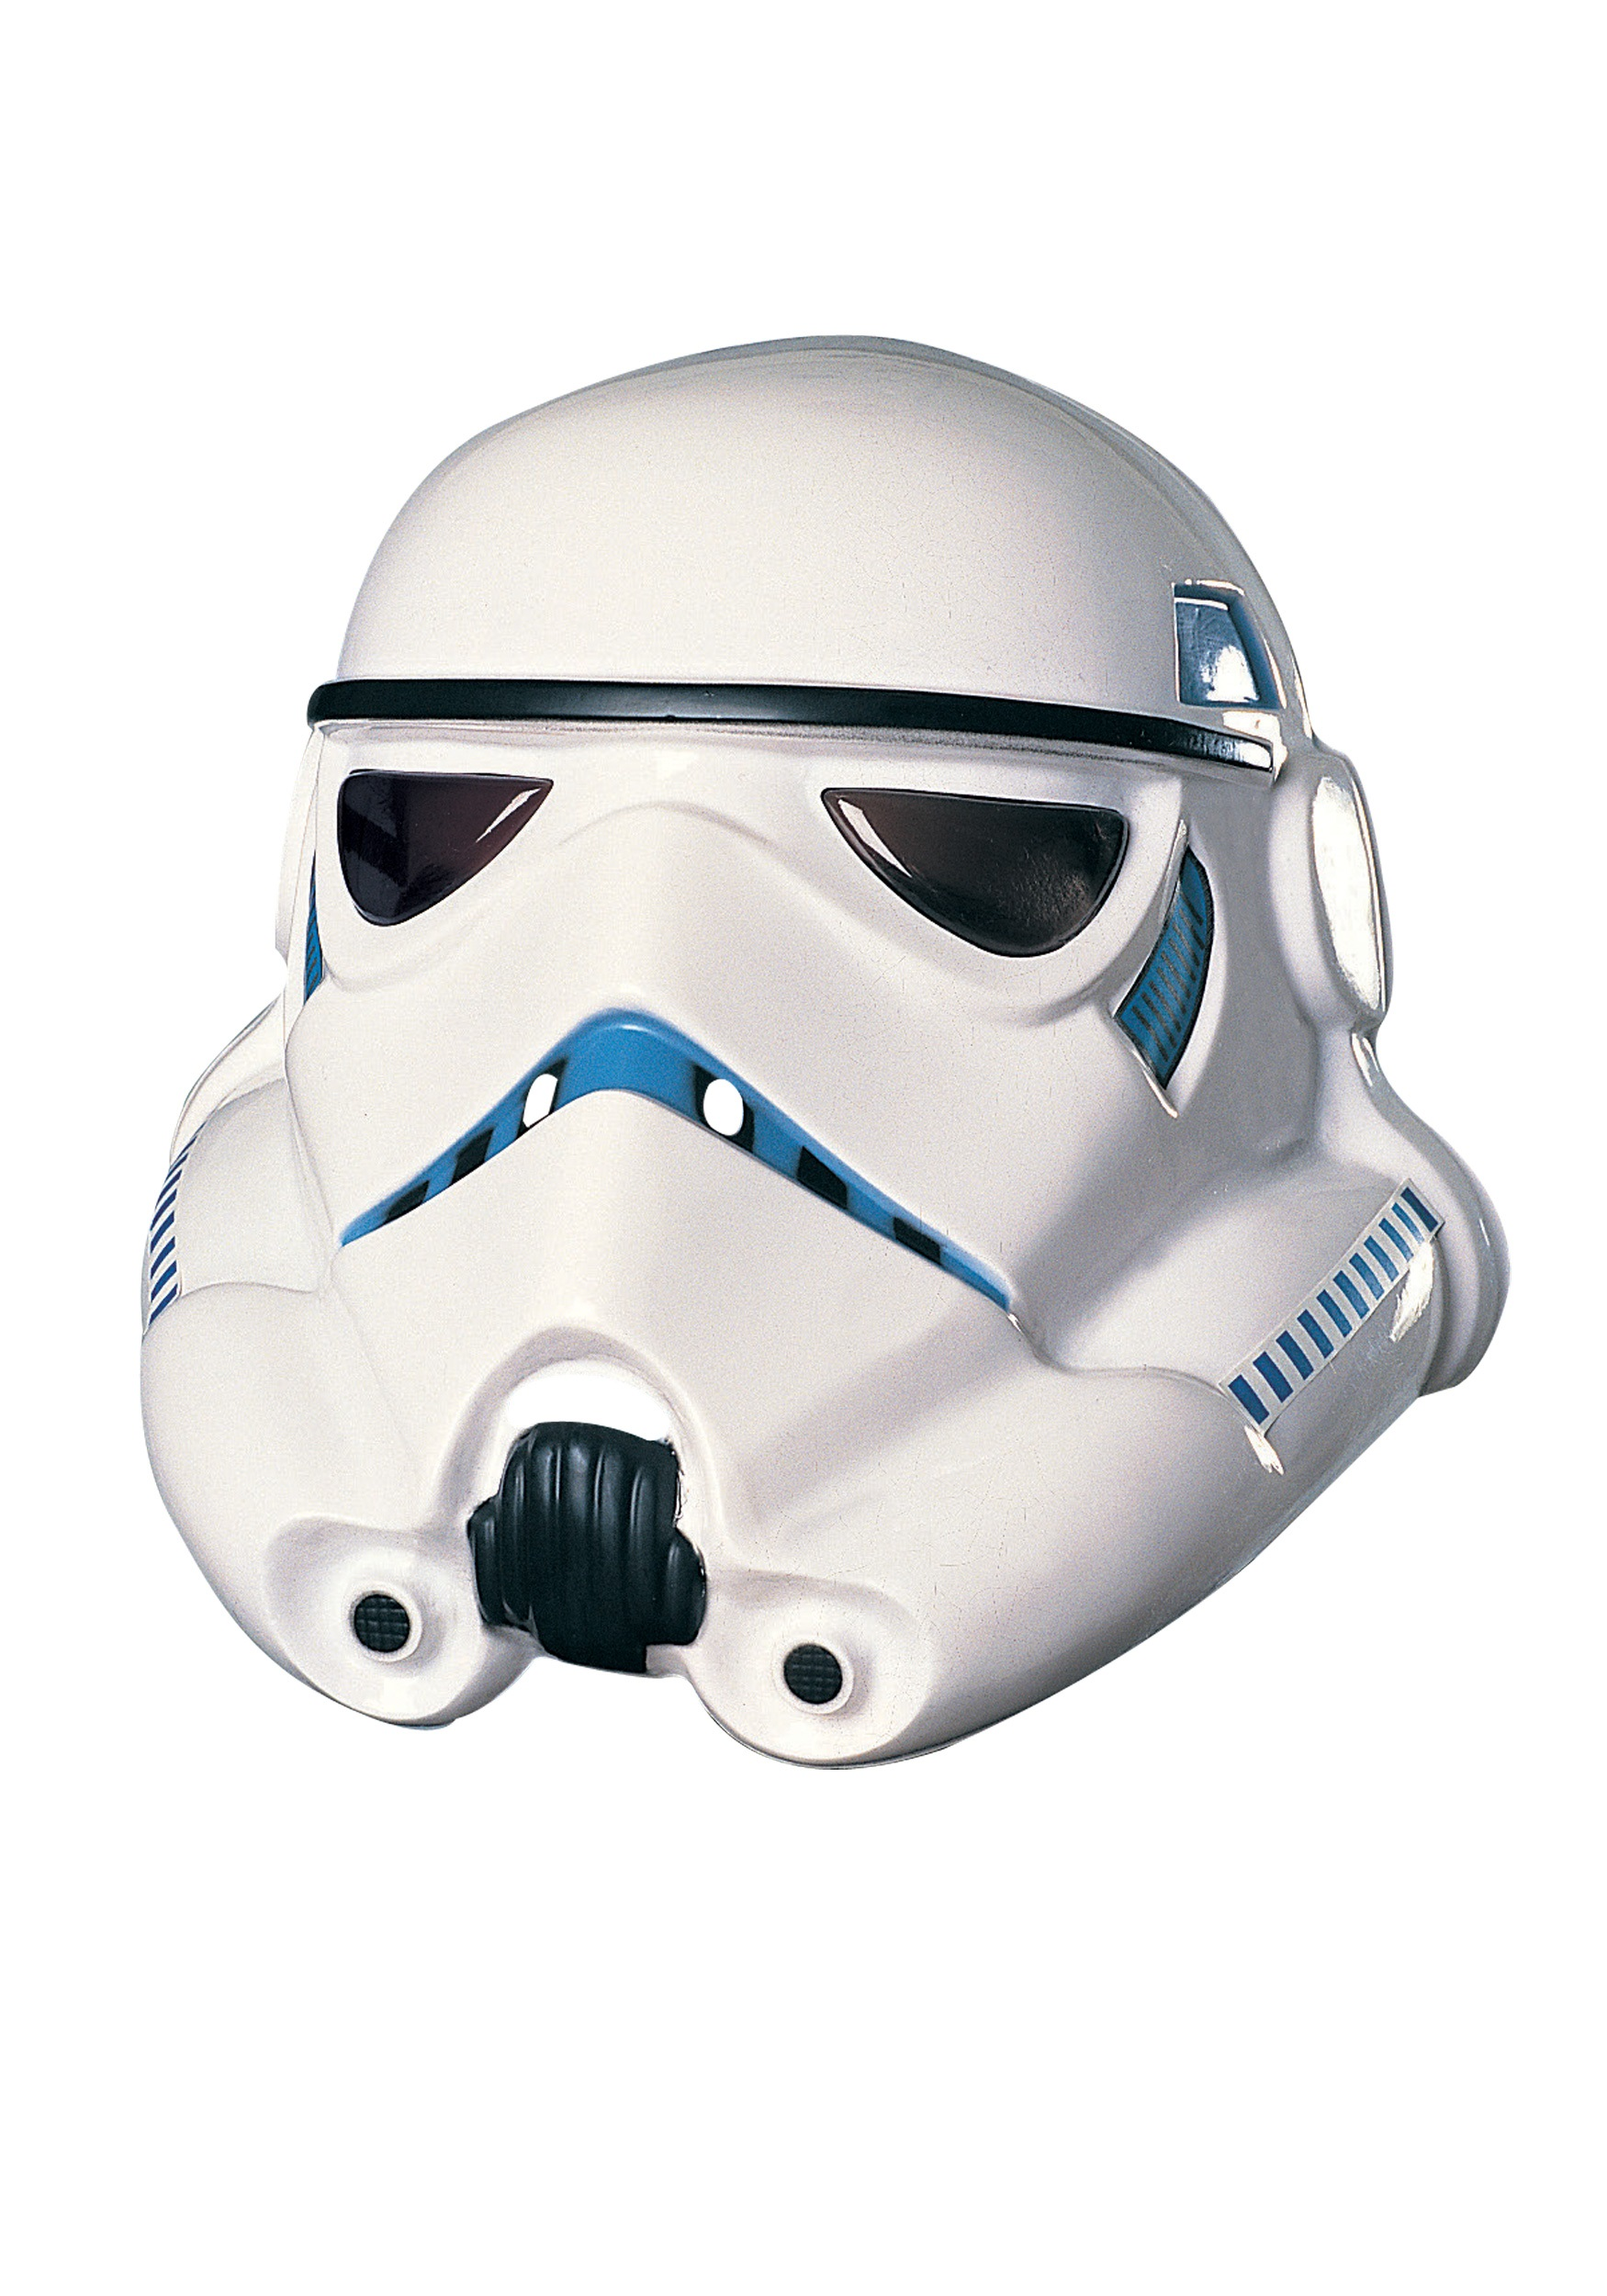 graphic about Stormtrooper Mask Printable identify Stormtrooper Costumes Armor -